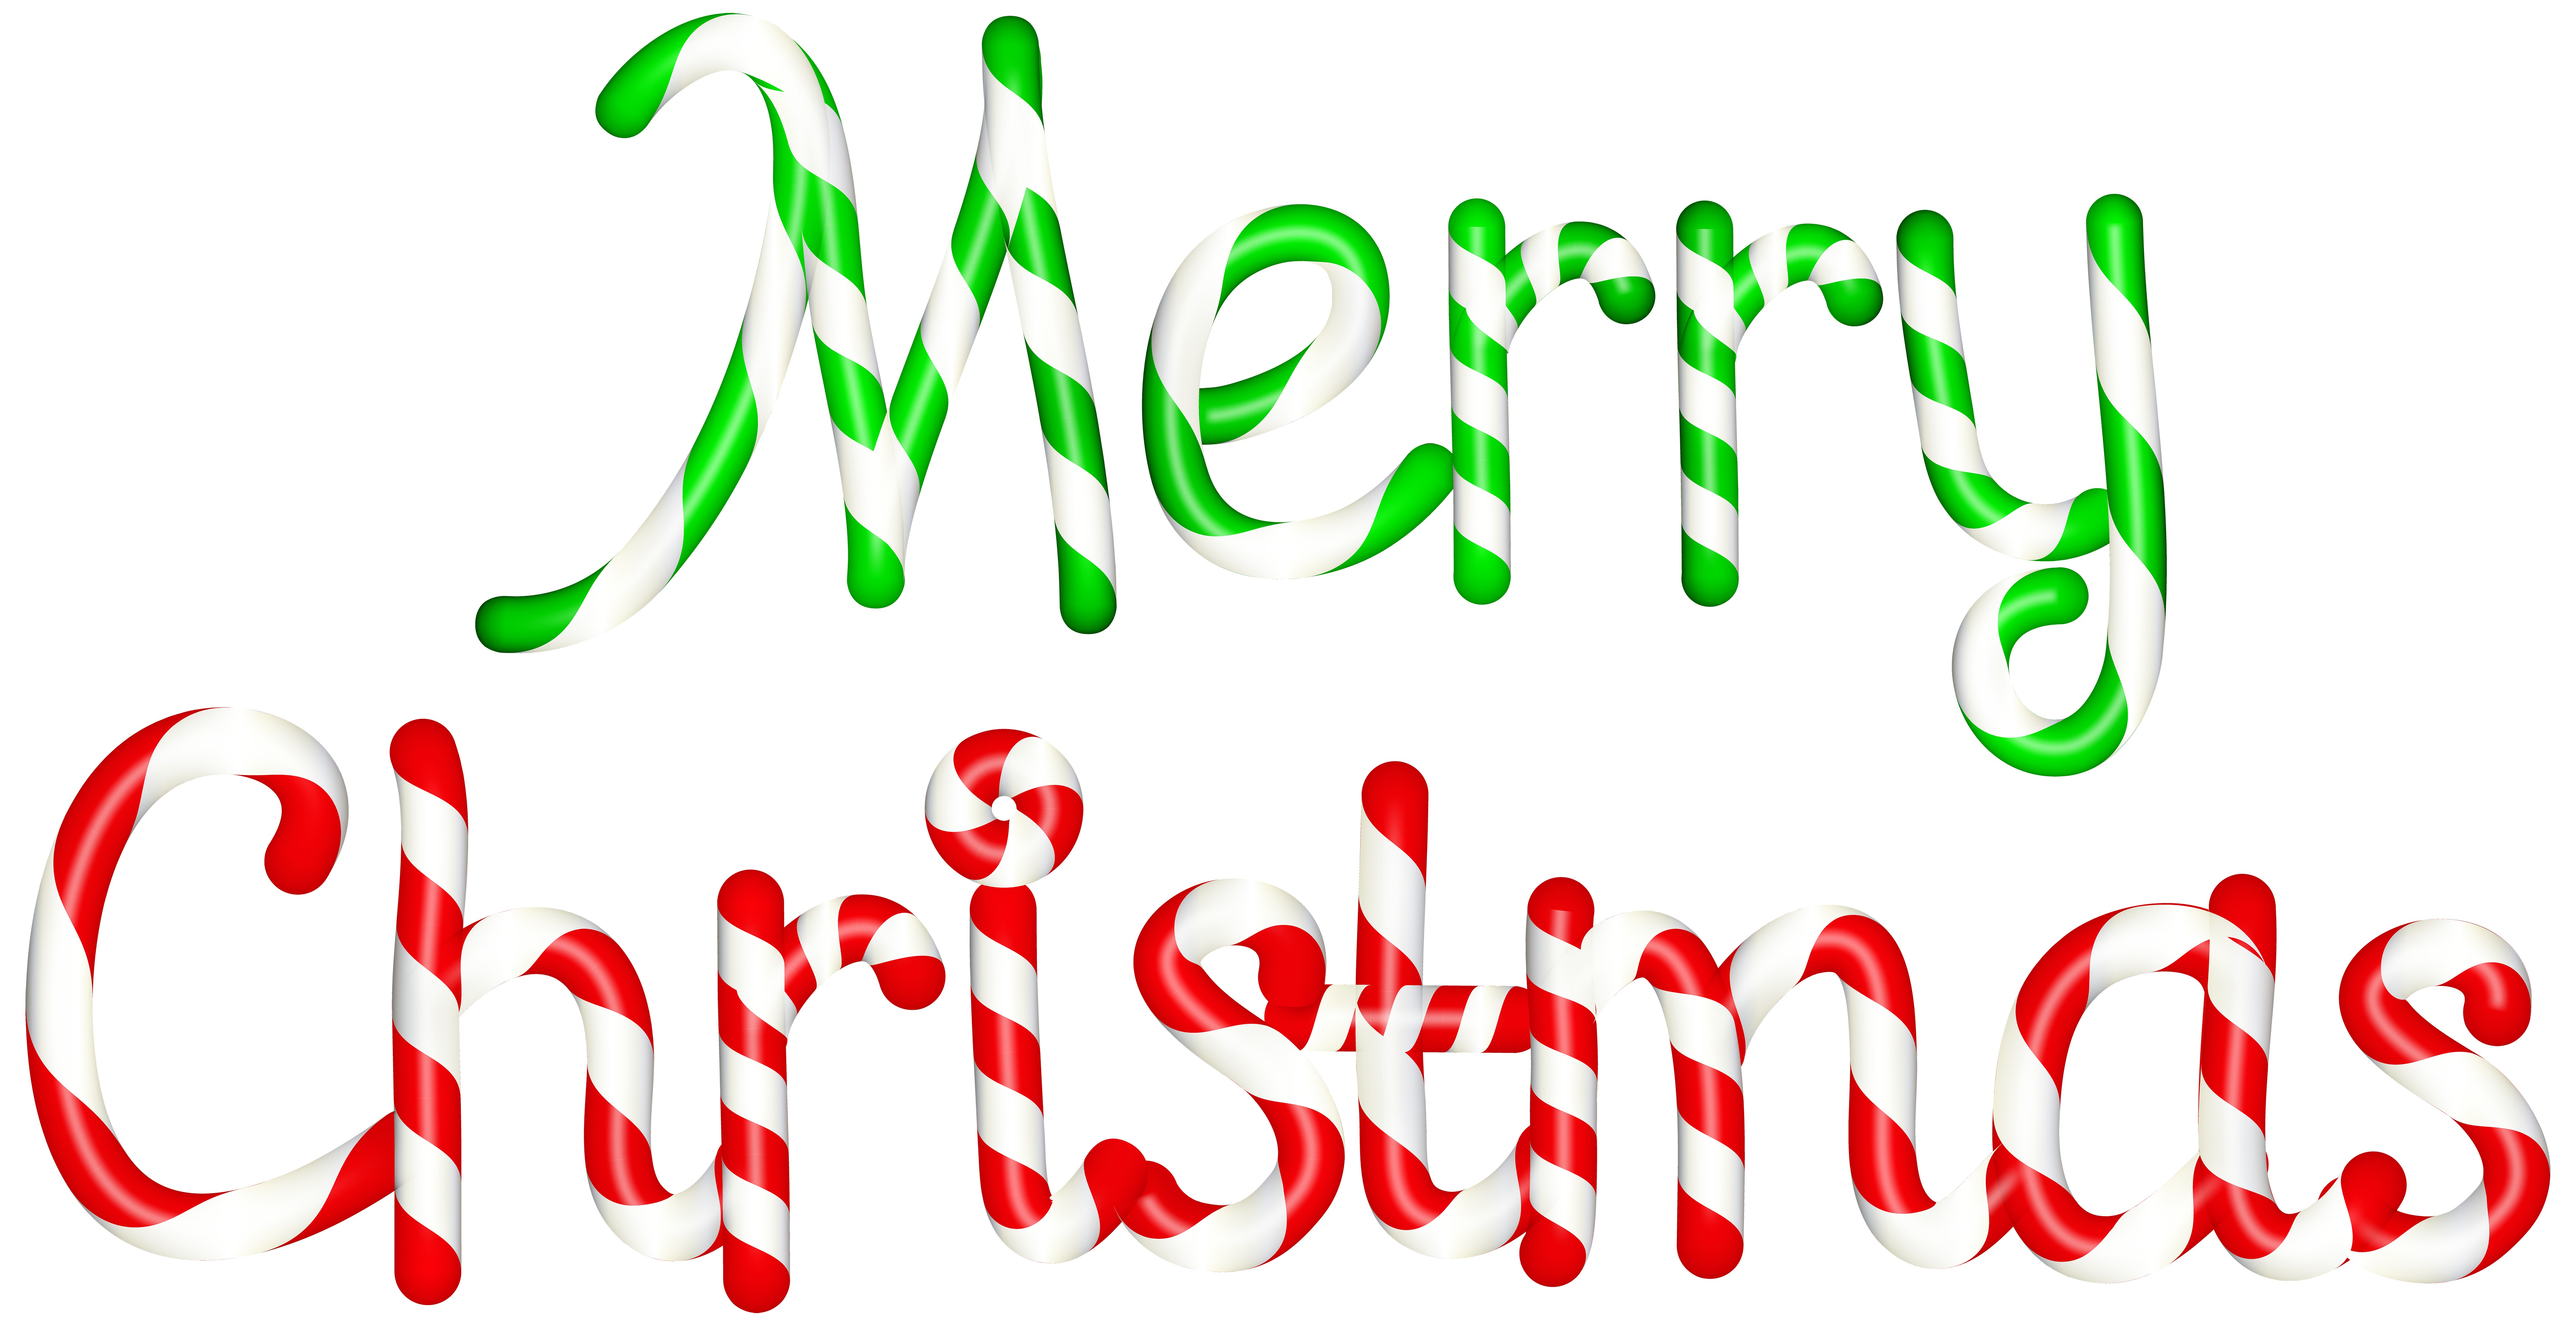 Merry christmas clipart transparent background. Orig happy gif